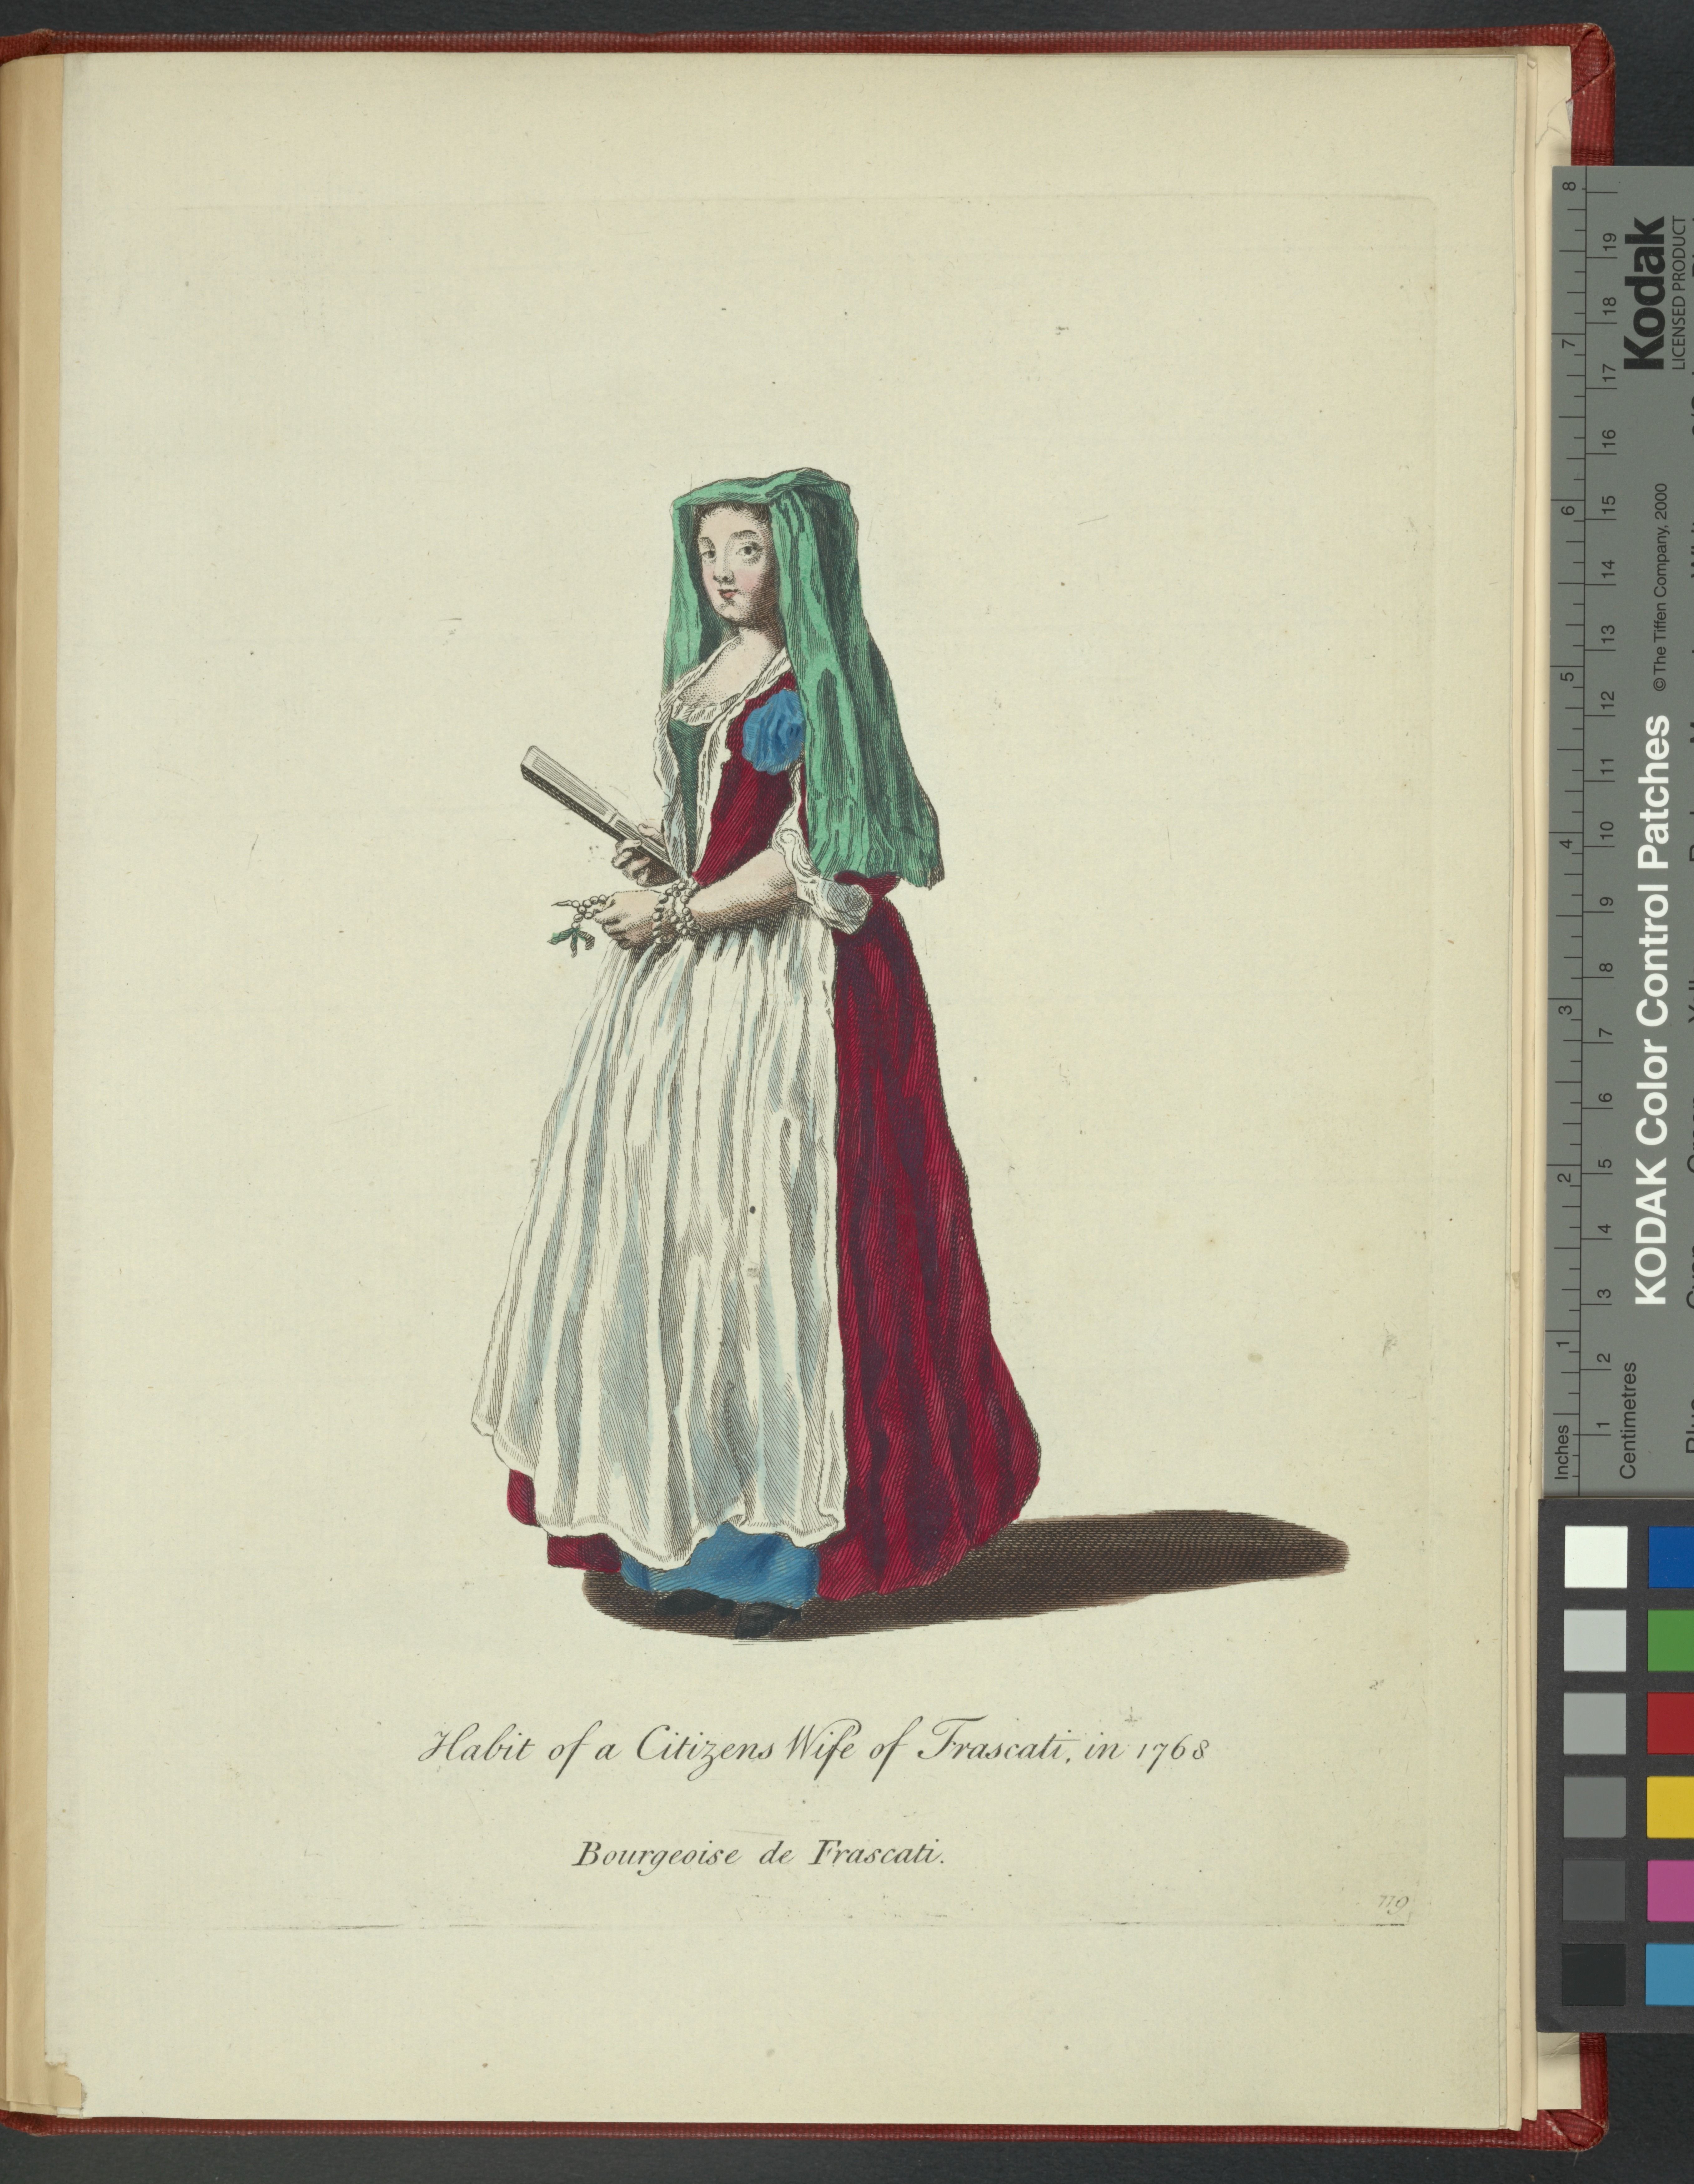 File:Habit of a citizen's wife of Frascati in 1768